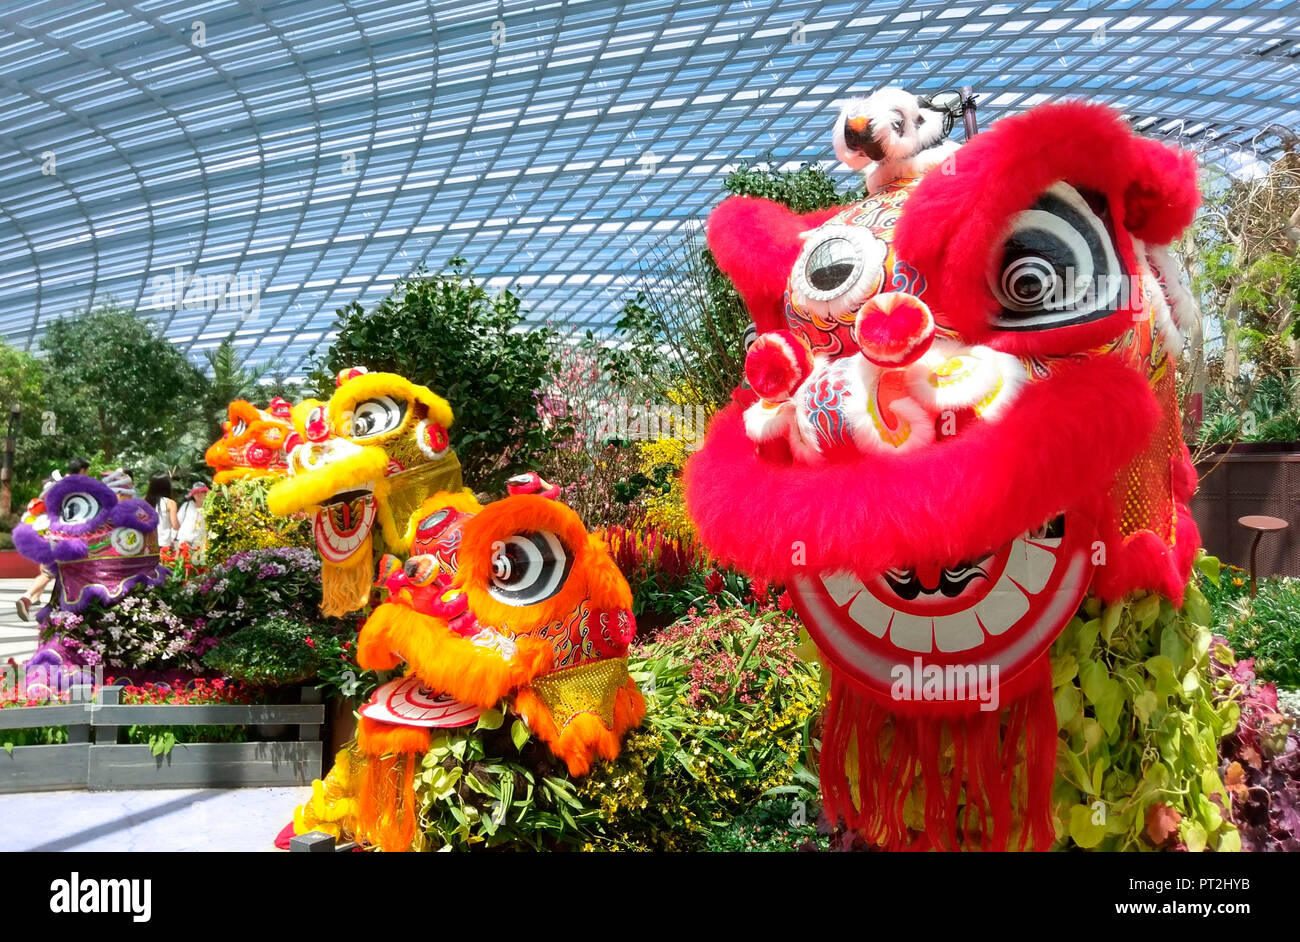 Chinese dragon figures in the Flower Dome in the 'Gardens by the Bay' in Singapore - Stock Image